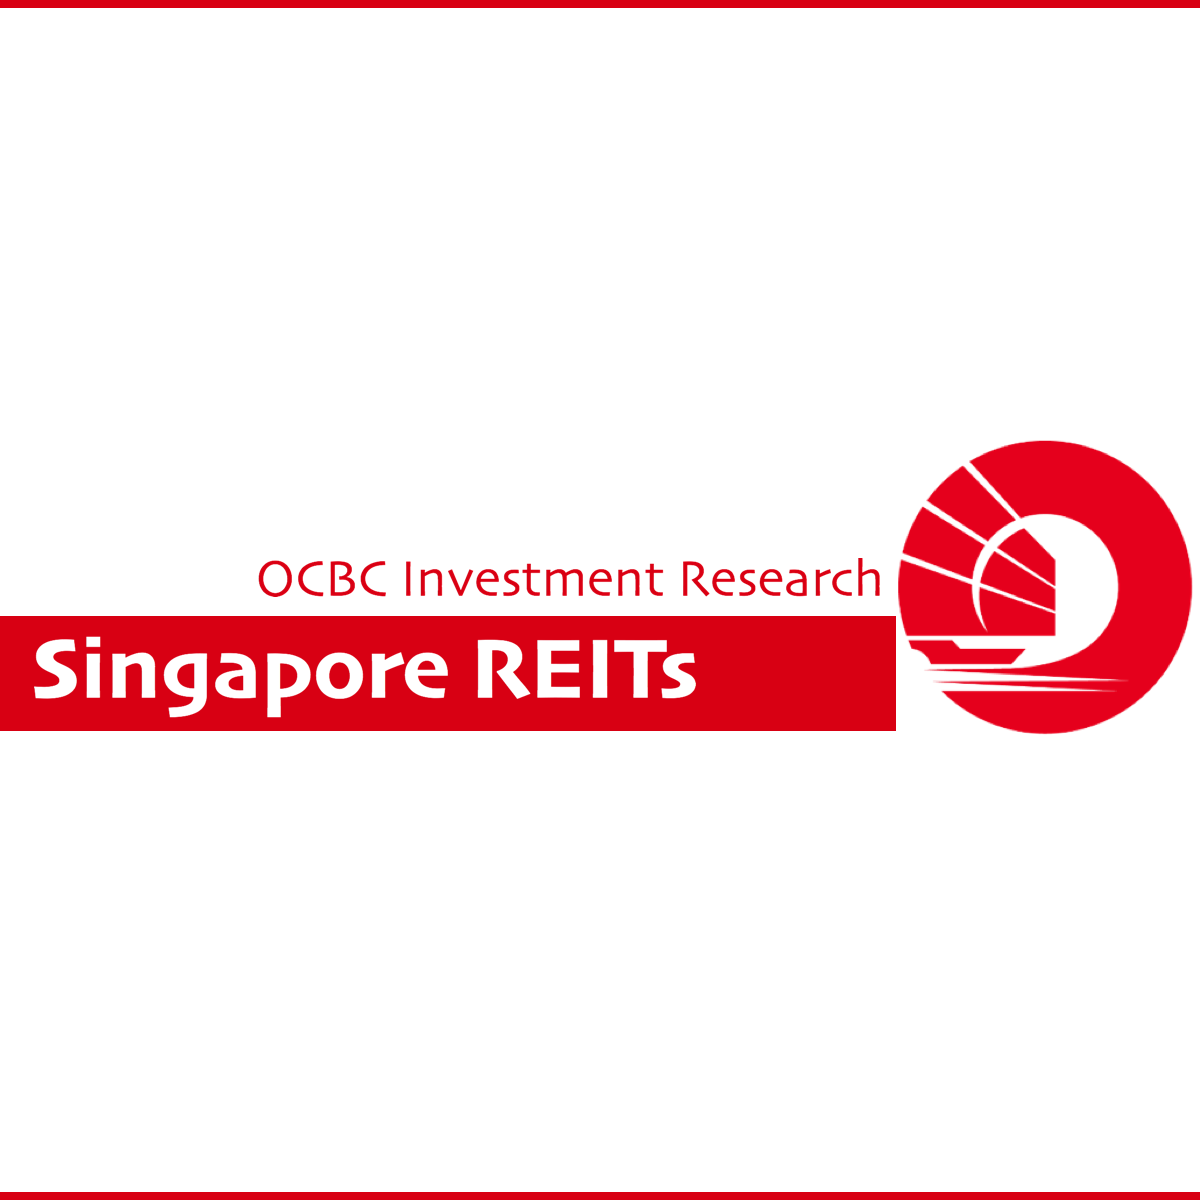 Singapore REITs - OCBC Investment 2017-06-05: Valuations Not Cheap, Be Selective